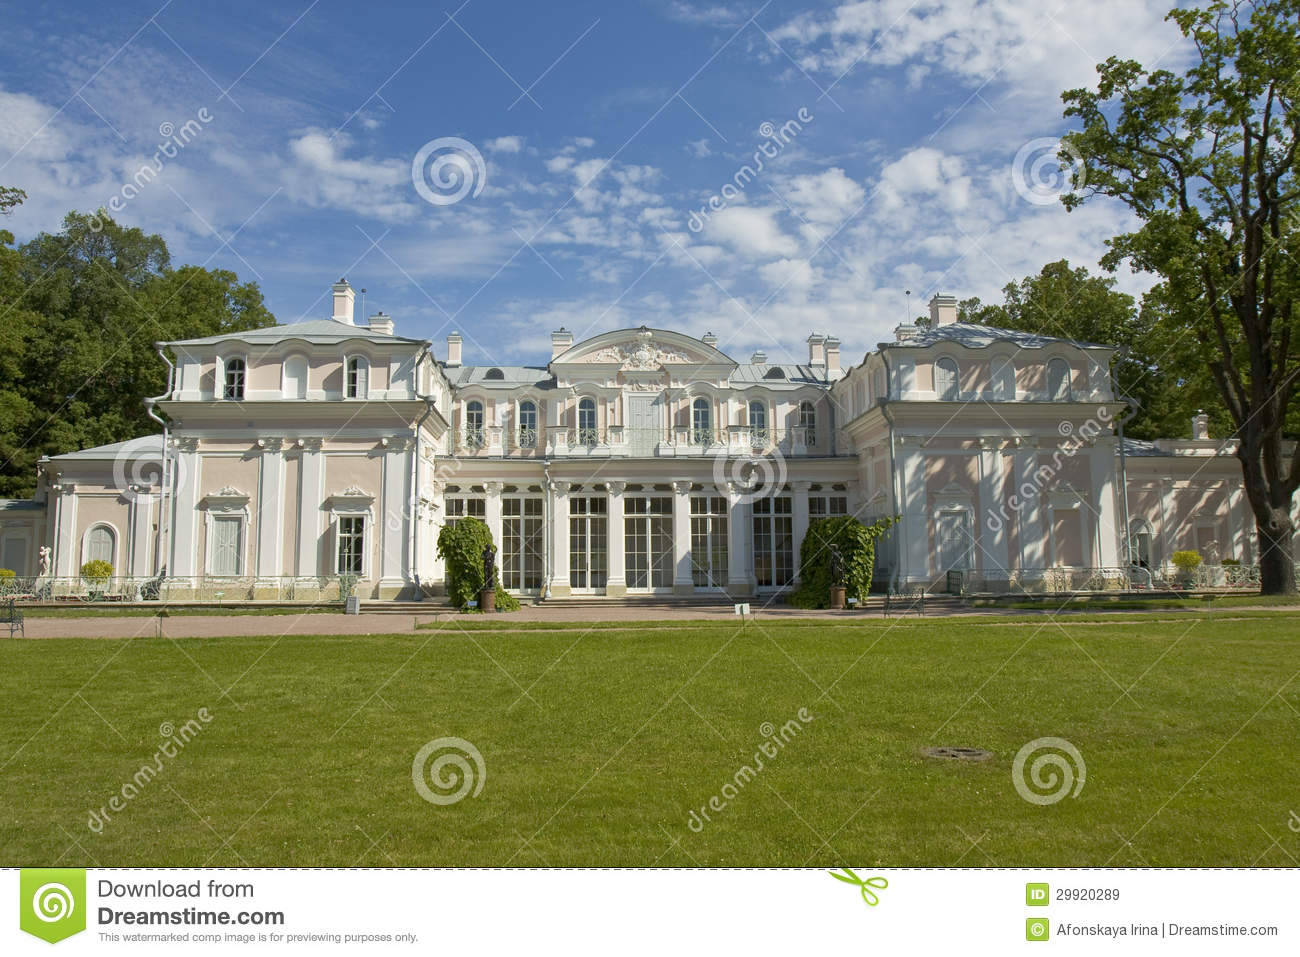 Chinese Palace In Oranienbaum, Russia Royalty Free Stock Images.